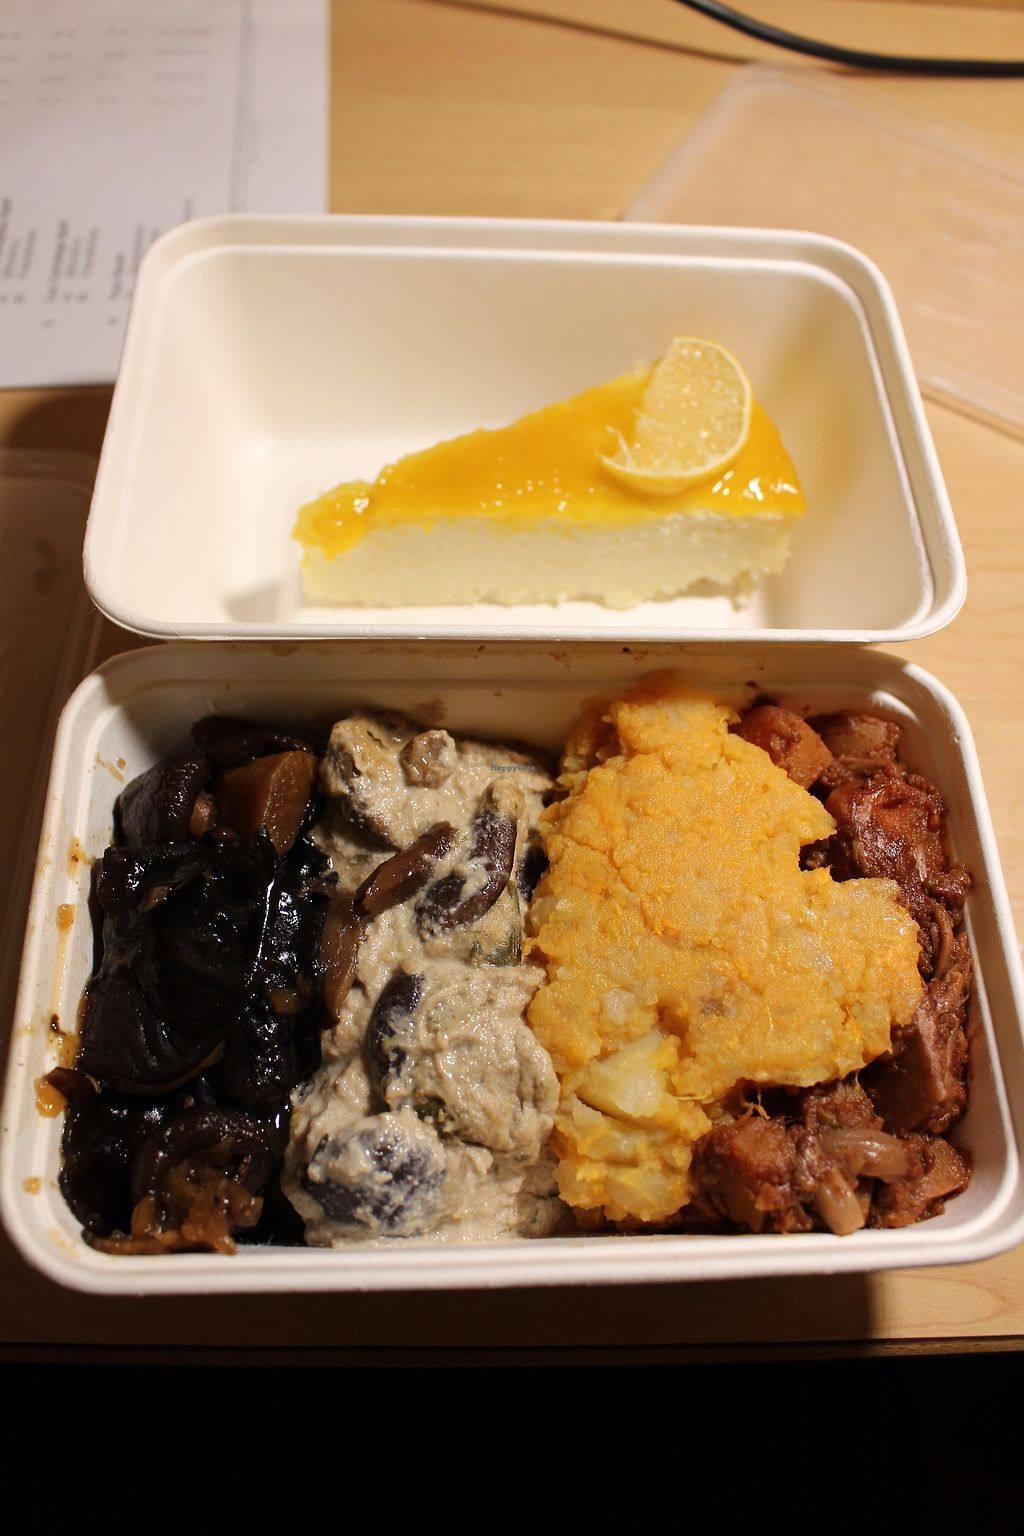 "Photo of CLOSED: Vantra Vitao  by <a href=""/members/profile/ericacrombie"">ericacrombie</a> <br/>Pay-by-the-box and I couldn't decide what to get so I got the mushroom stew, mushroom stroganoff, mash and BBQ jackfruit. The mash and jackfruit were nice, the mushroom dishes not so much but I think that's because I got them at 10:30pm and they'd been sitting there for probably hours making the mushrooms rubbery. Also got a lemon cheesecake which I wasn't a fan of but other people might like it.  <br/> September 23, 2017  - <a href='/contact/abuse/image/5861/307311'>Report</a>"